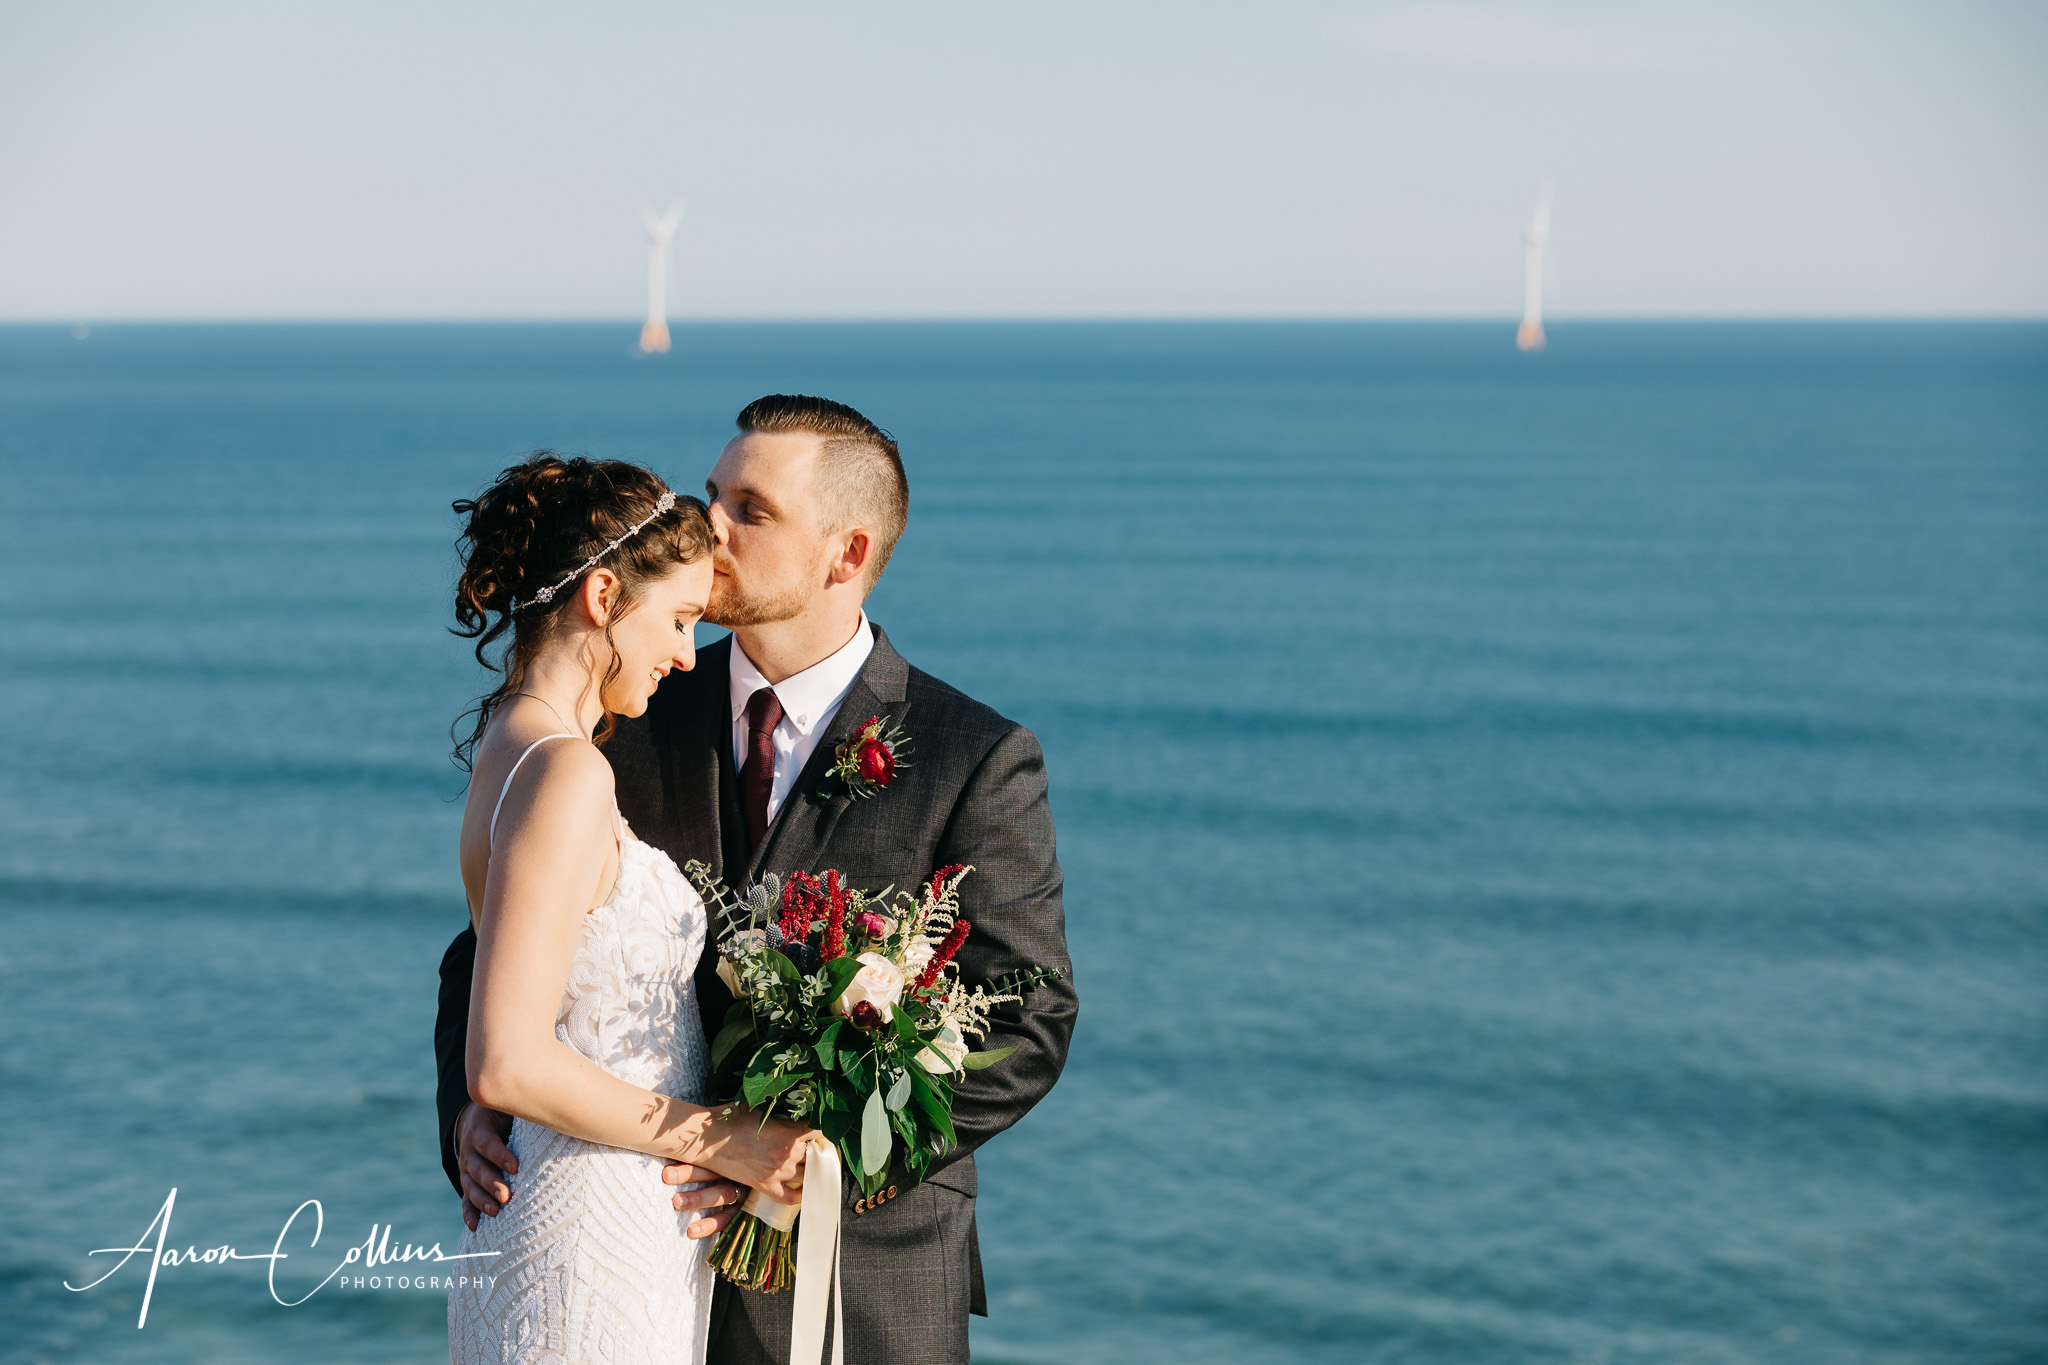 Groom kissing bride on the forehead on the cliffs at Mohegan Bluffs overlooking Block Island Sound.